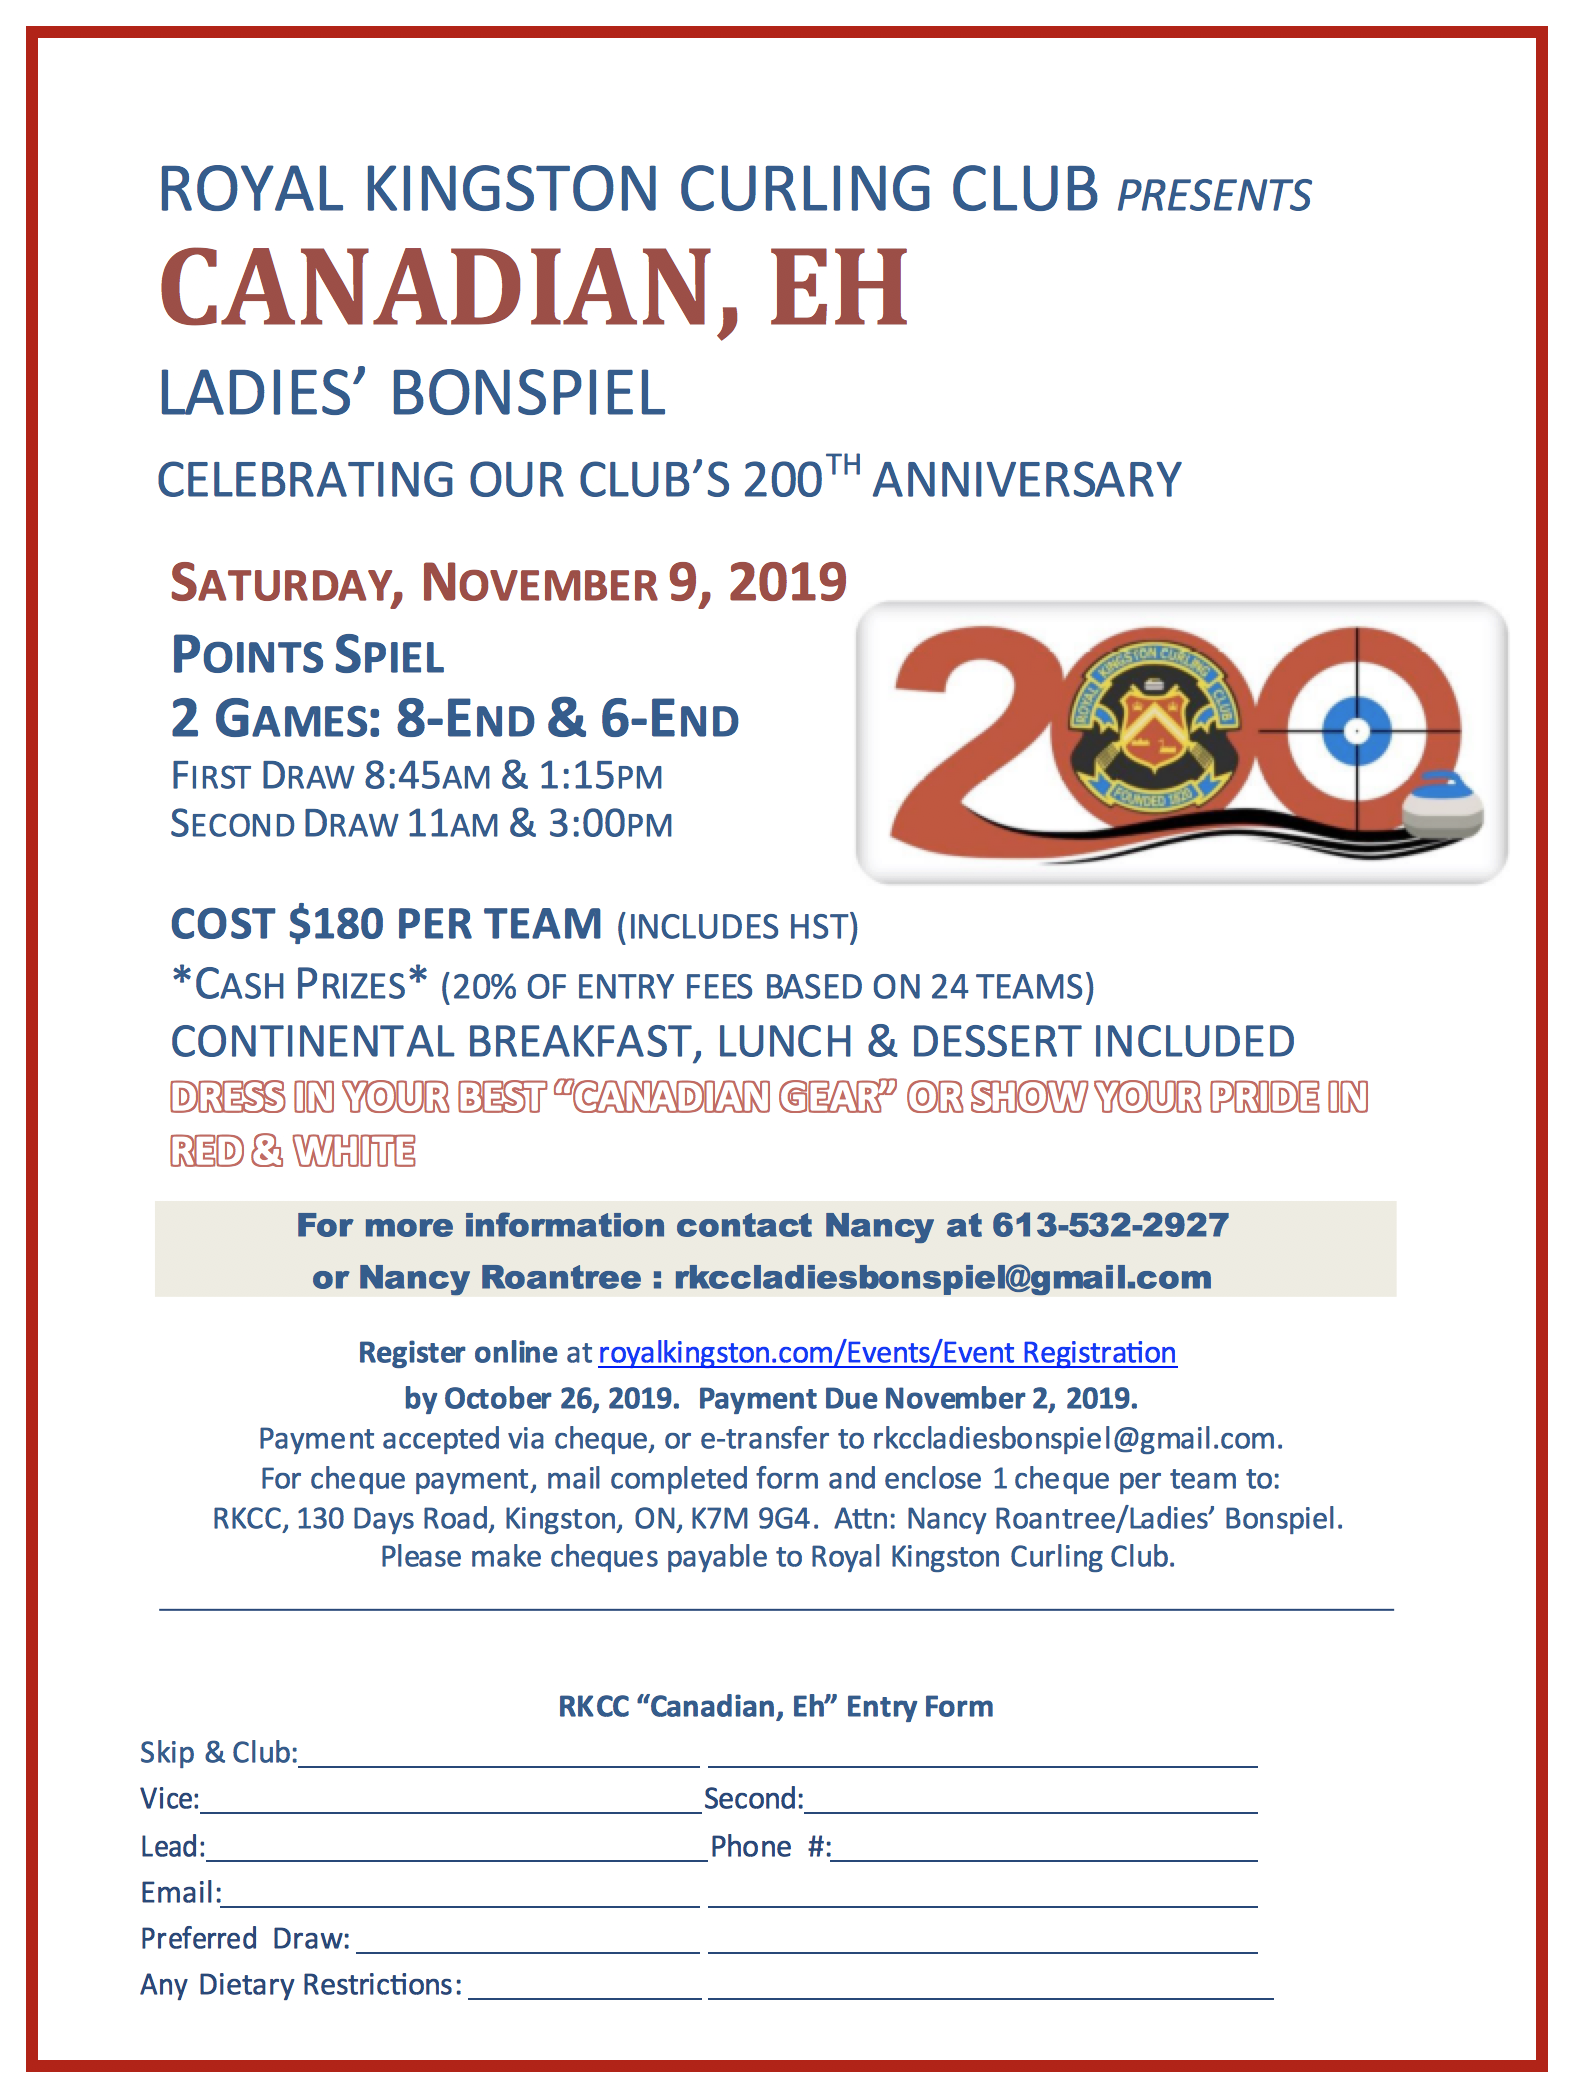 LadiesOpenBonspiel CanadianEh Nov2019